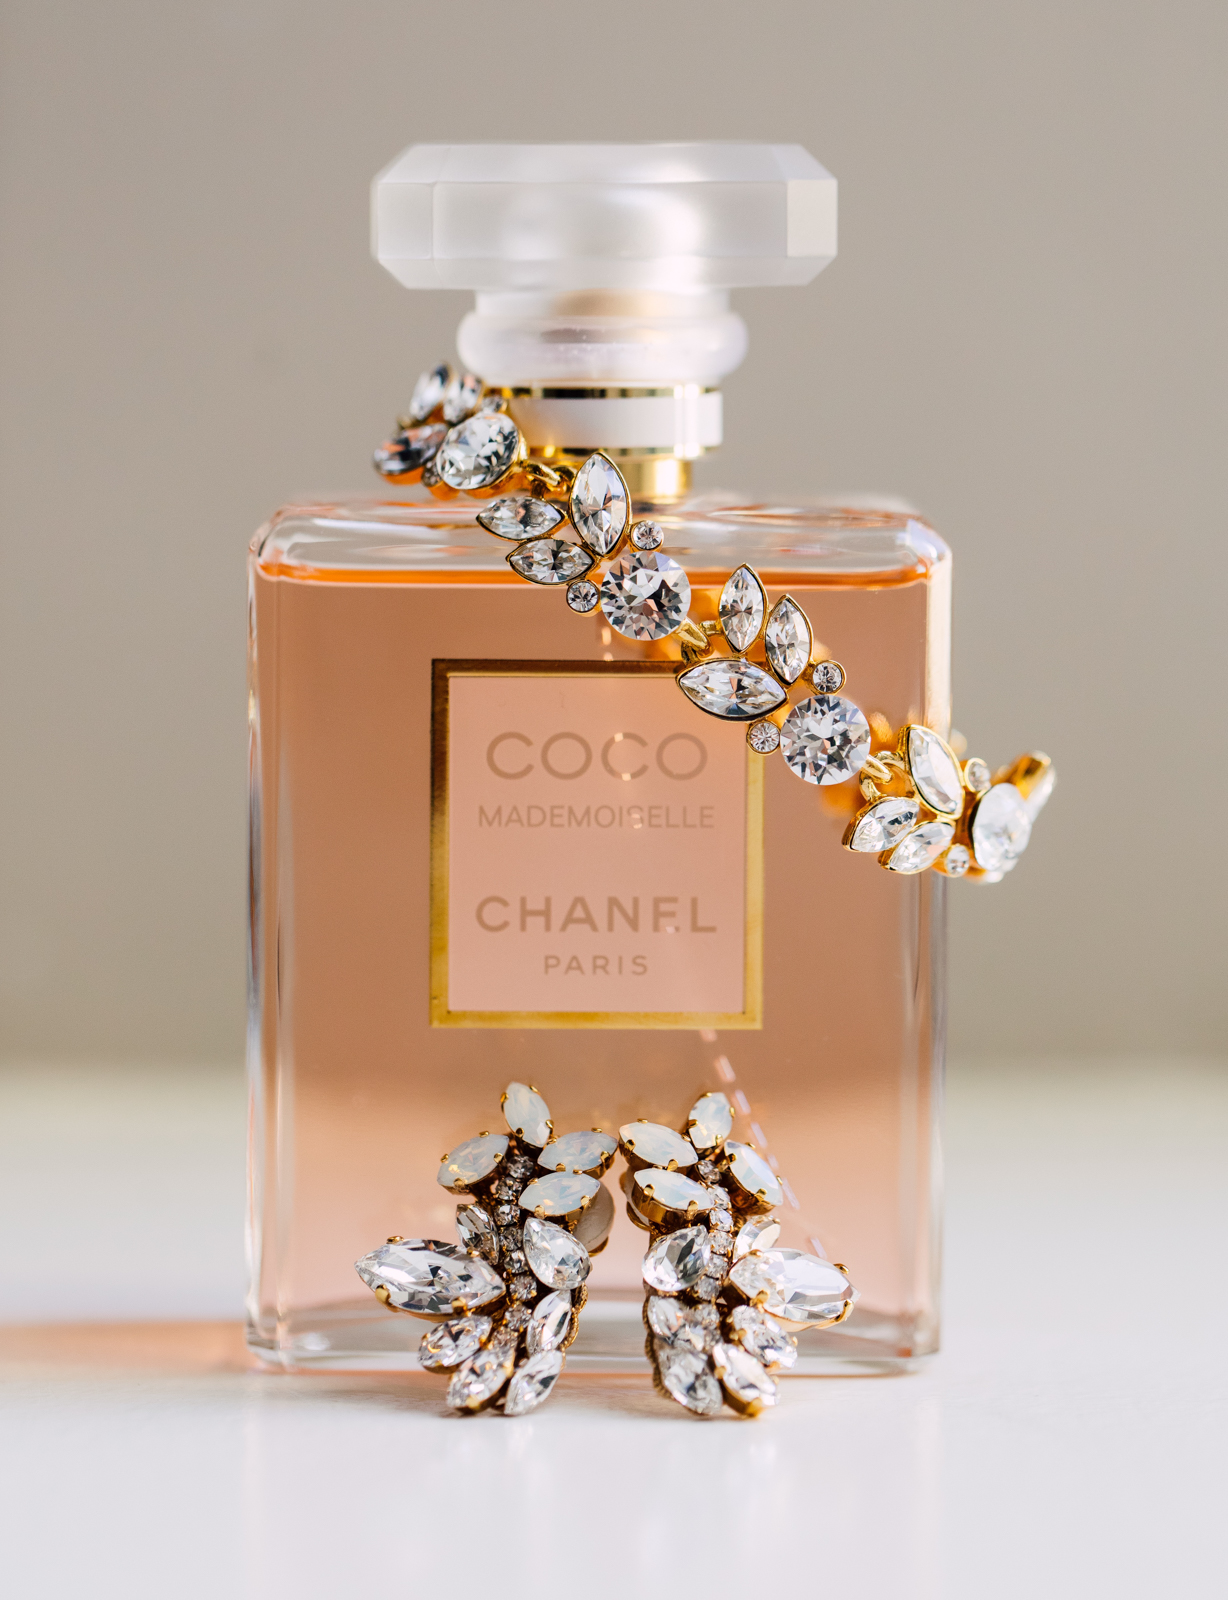 Coco chanel wedding scent